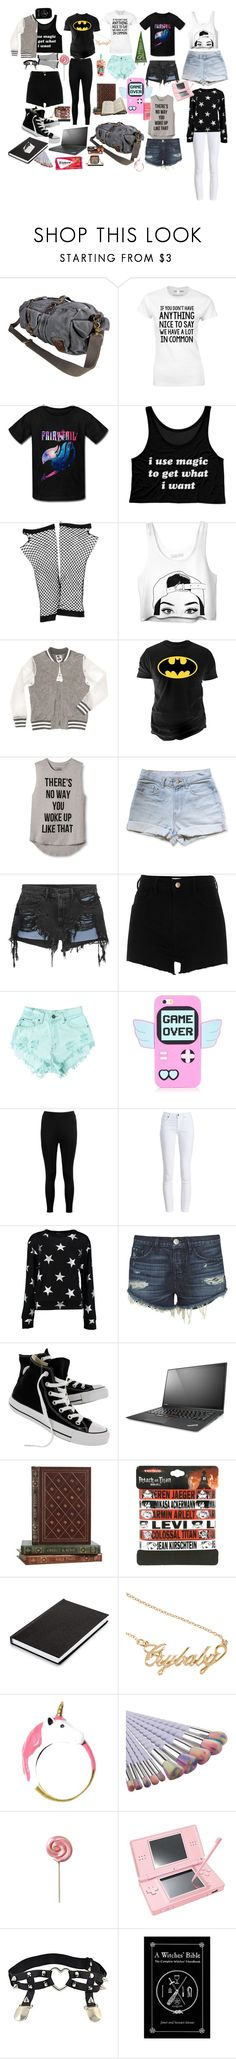 """7-Day Trip Challenge! RTD"" by darkwolf180 ❤ liked on Polyvore featuring VIPARO, Forever 21, NY&Lon MonnaLisa, Changes, INC International Concepts, Alexander Wang, River Island, Levi's, Boohoo and Barbour"